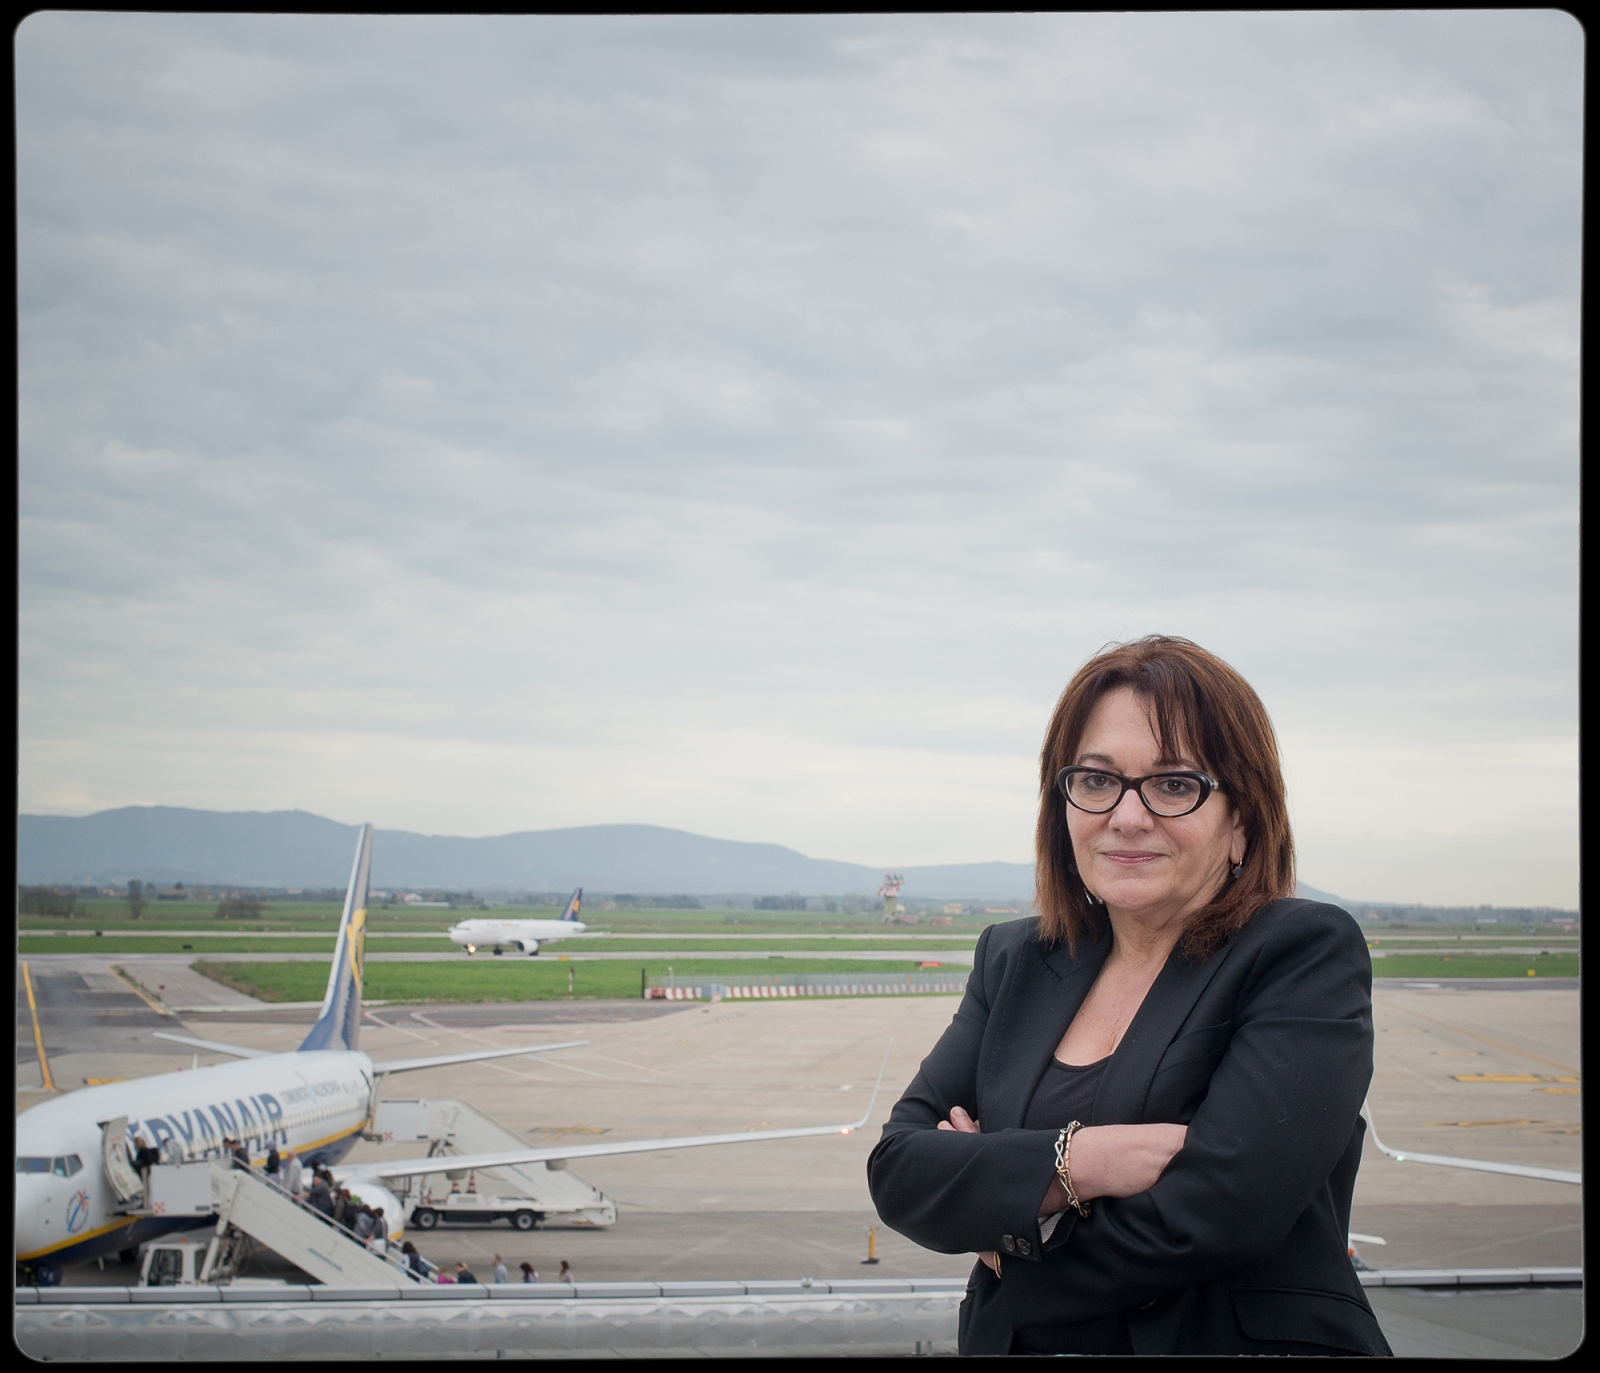 The CEO of the Pisa Airport Gina Giani